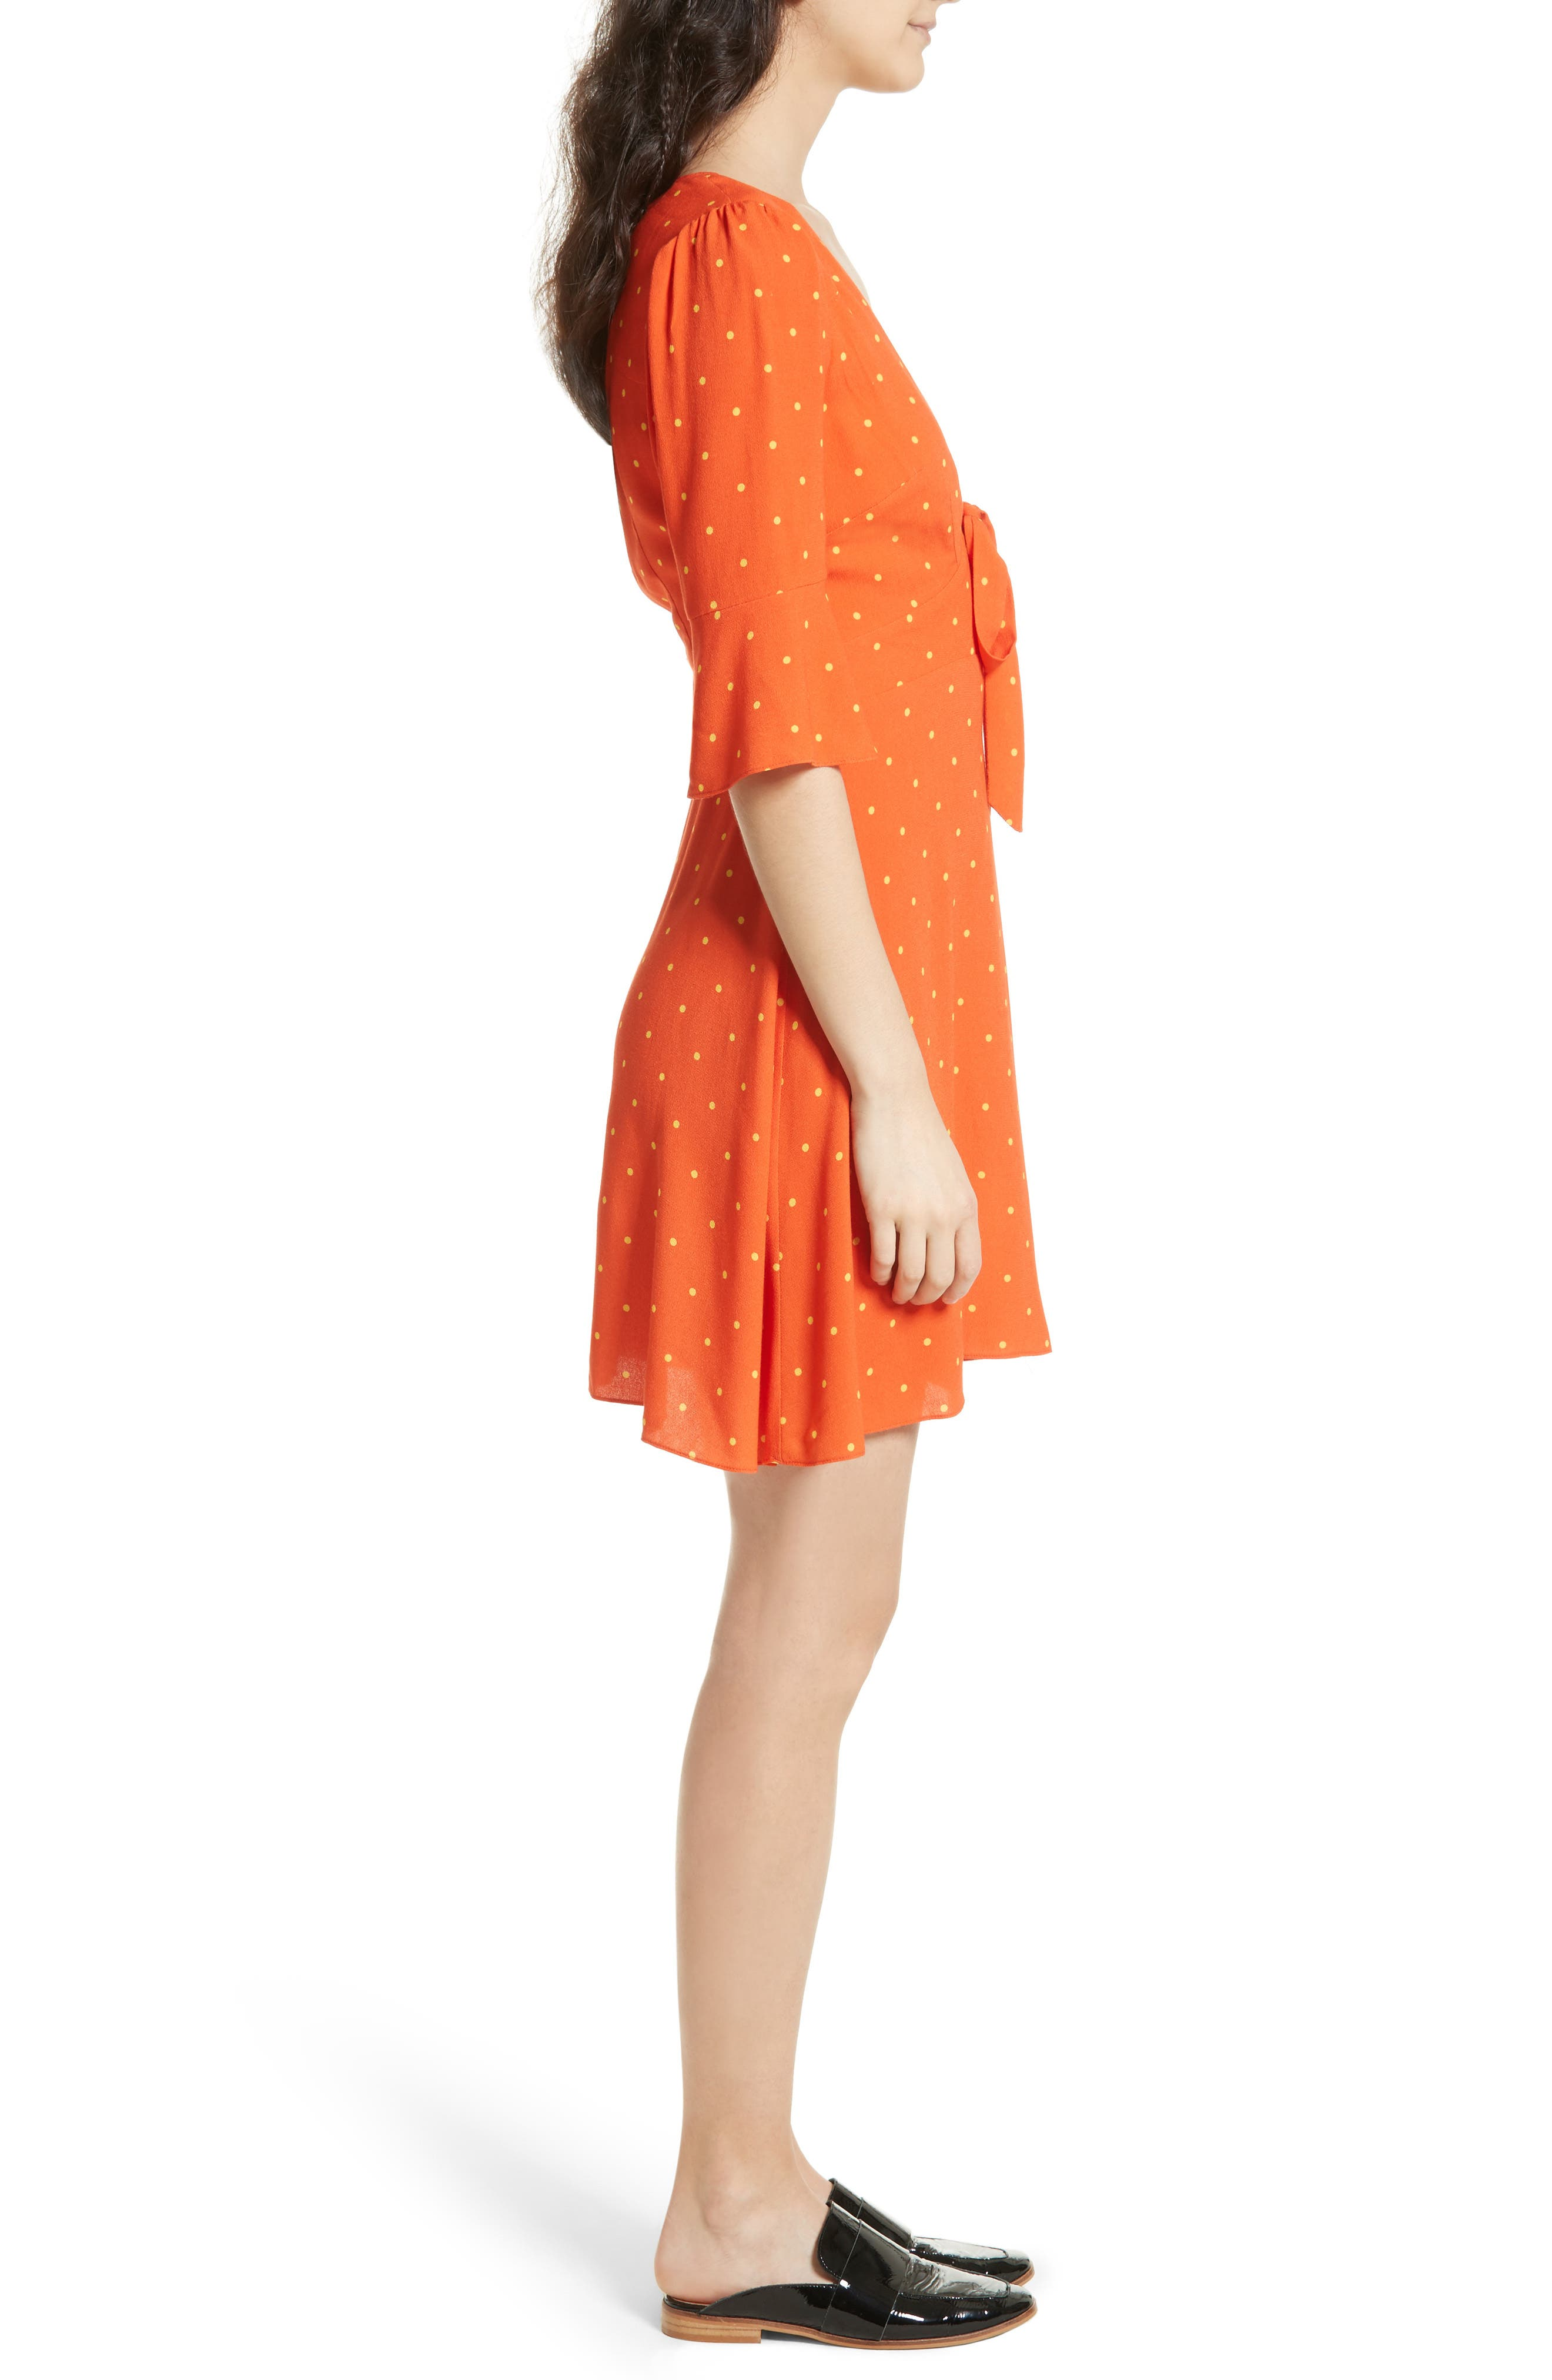 All Yours Minidress,                             Alternate thumbnail 6, color,